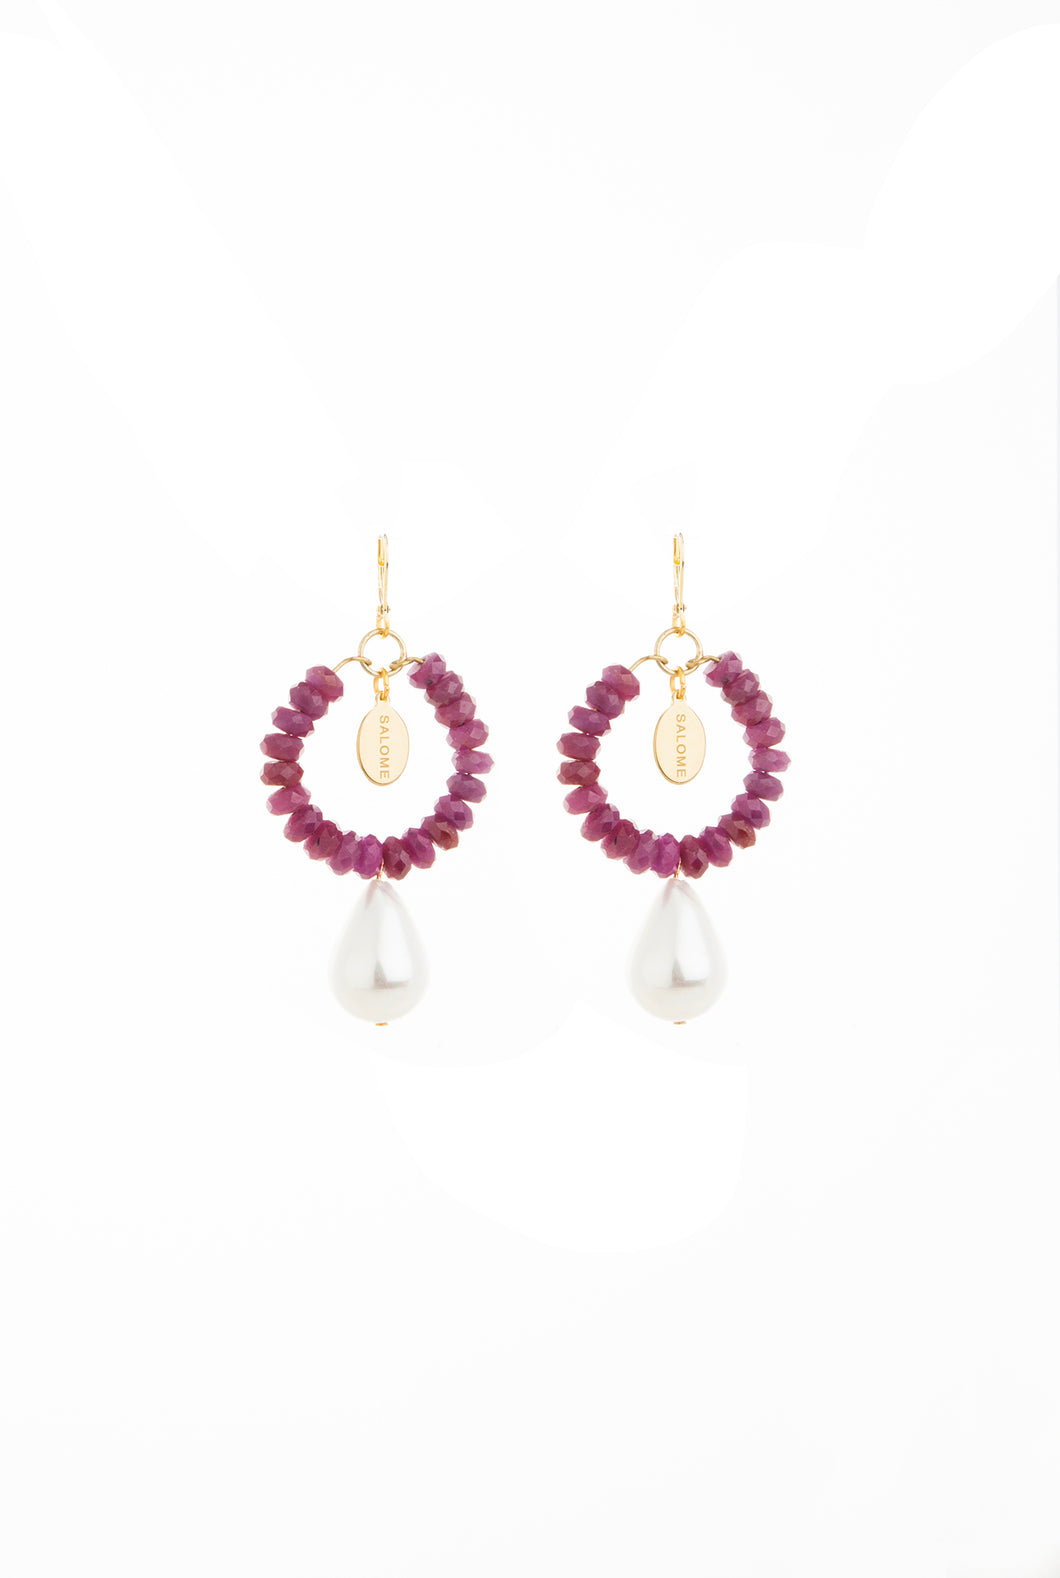 Bohemian Renaissance Ruby Earrings